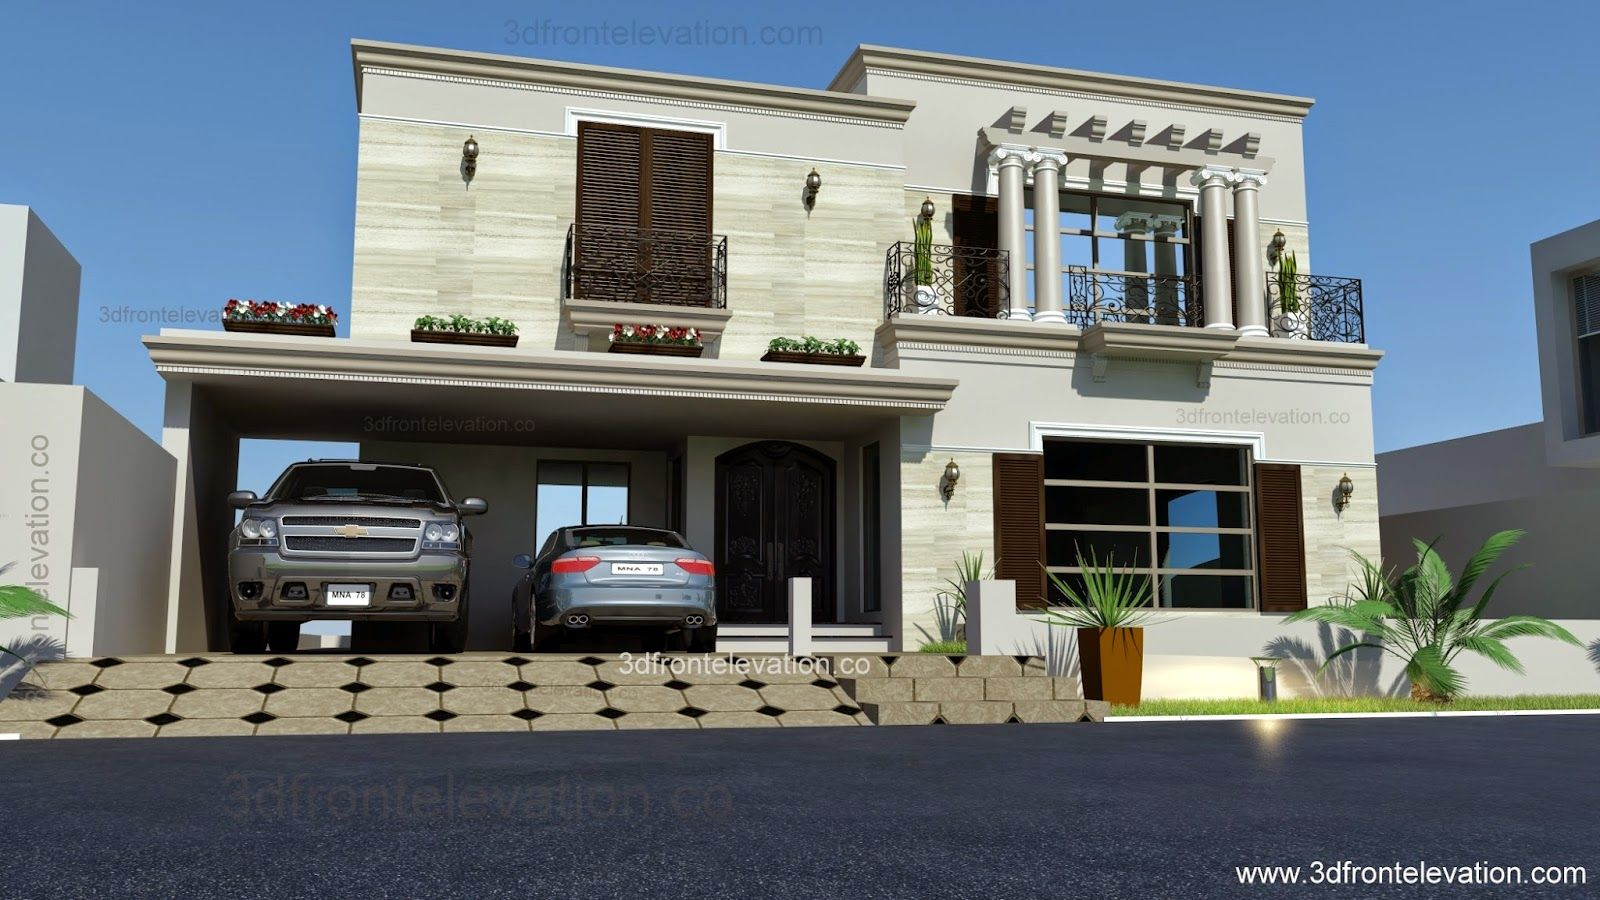 Front Elevation Of Houses In Lahore : Image result for copy images of the building exterior